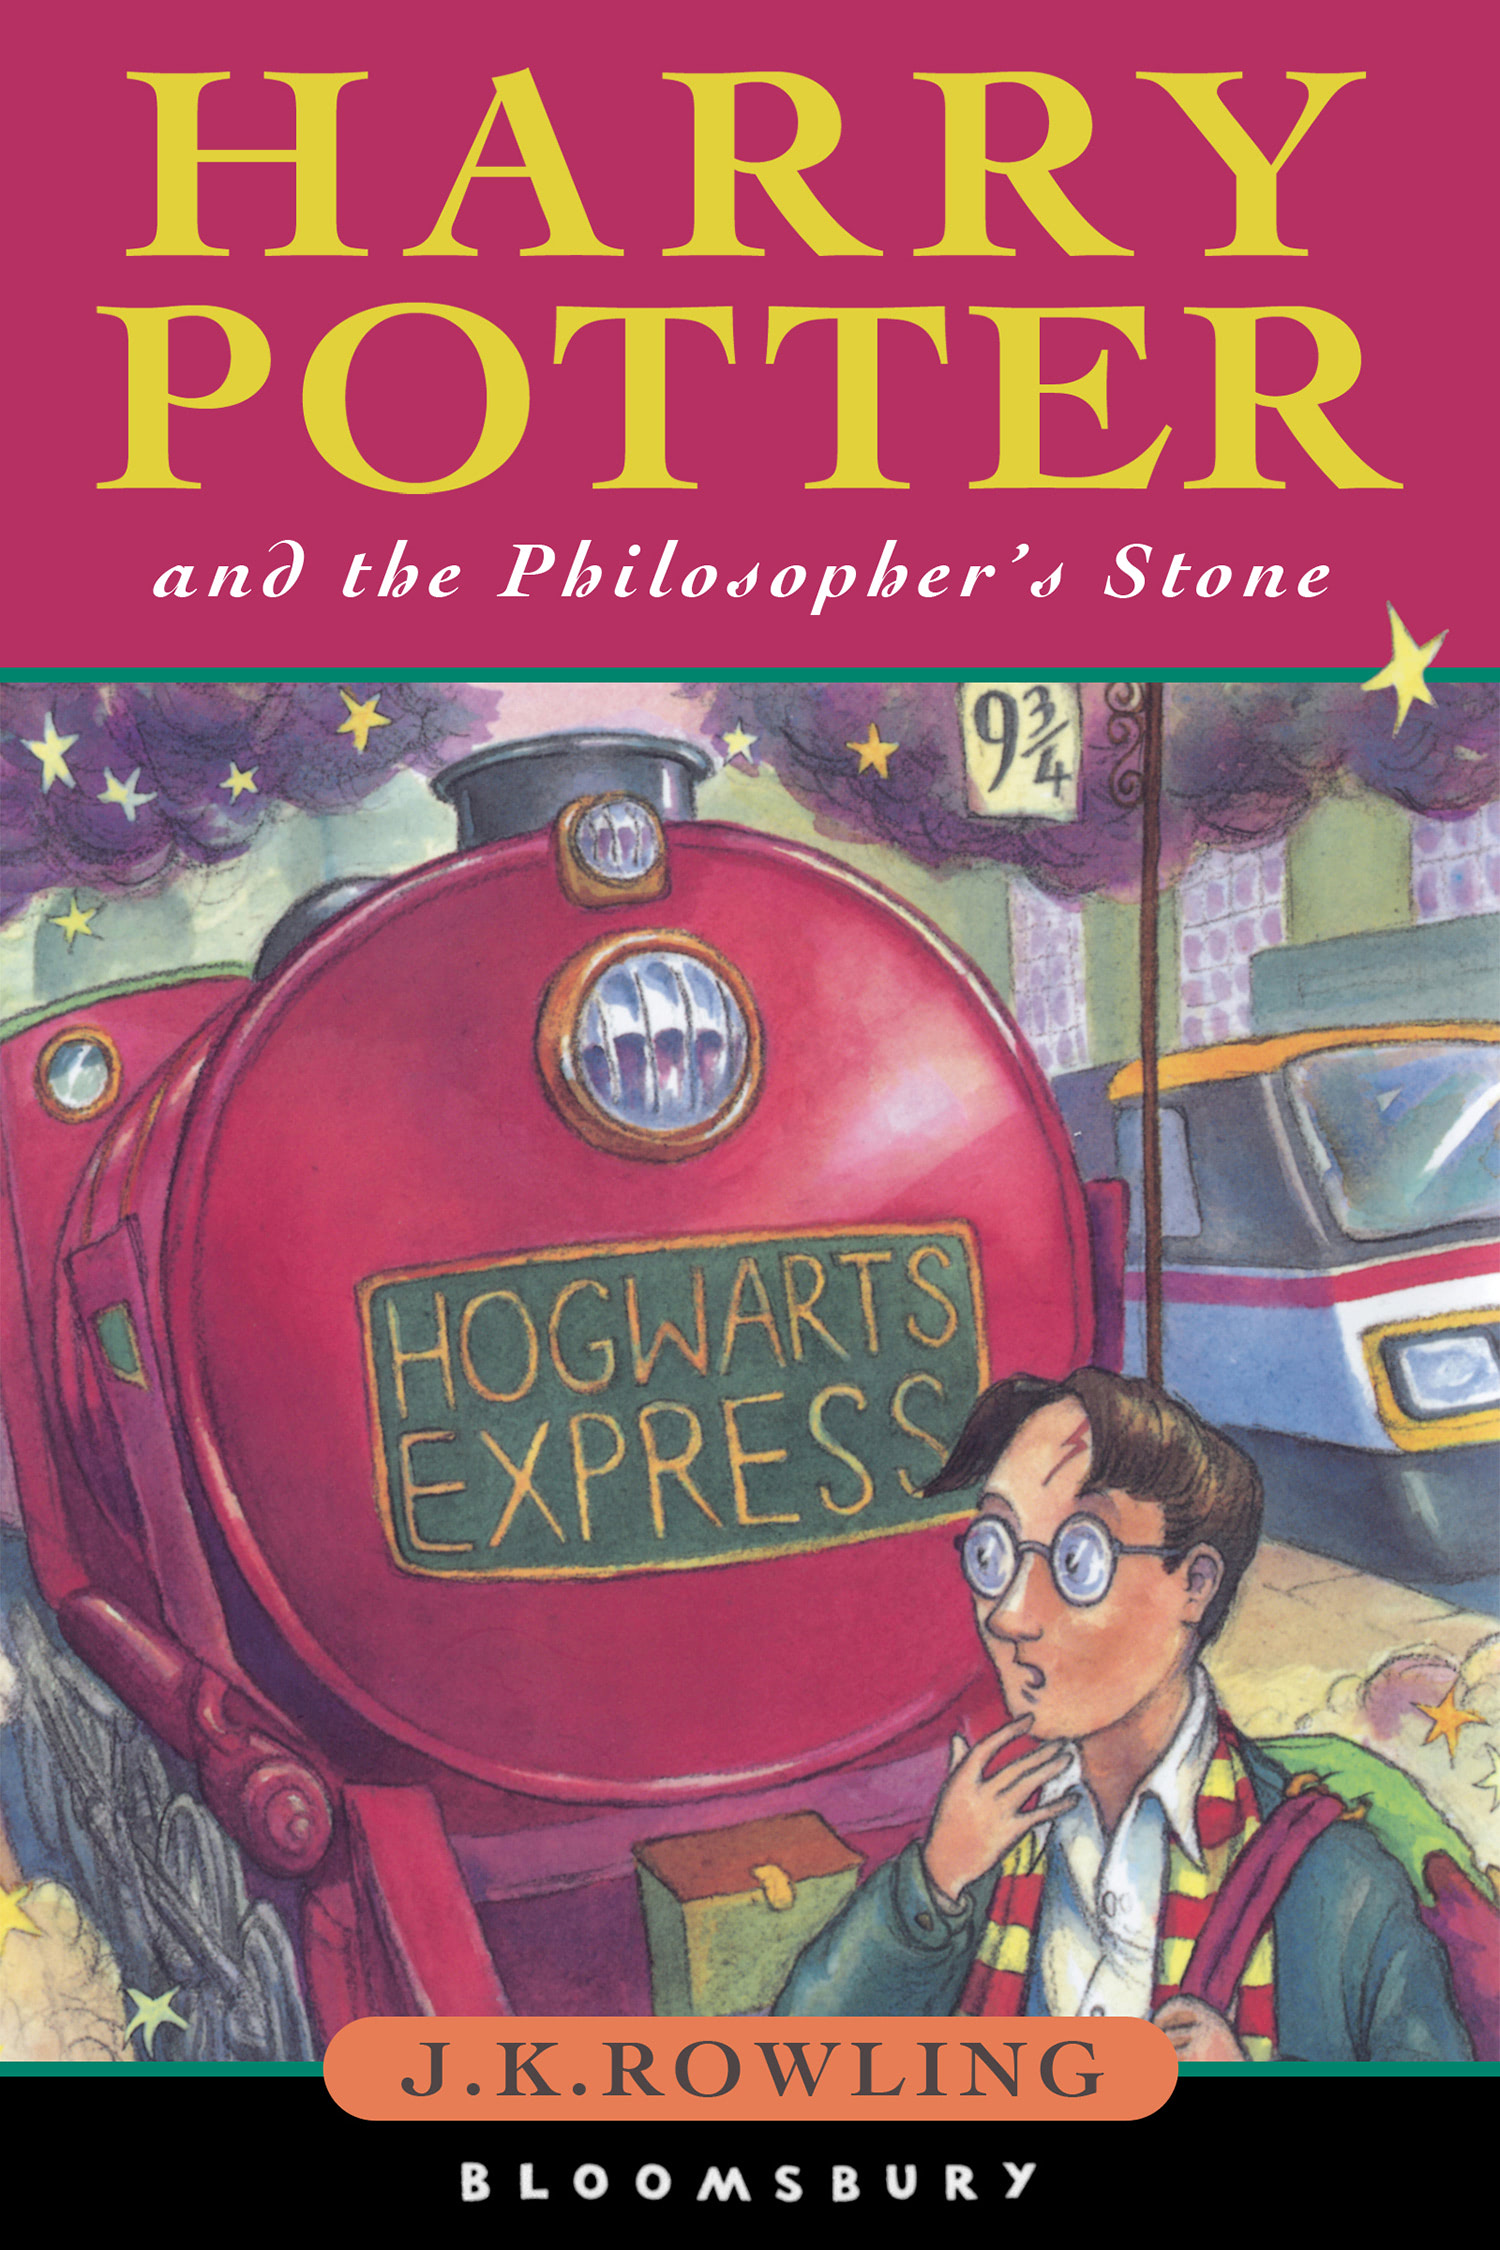 'Philosopher's Stone' UK children's edition